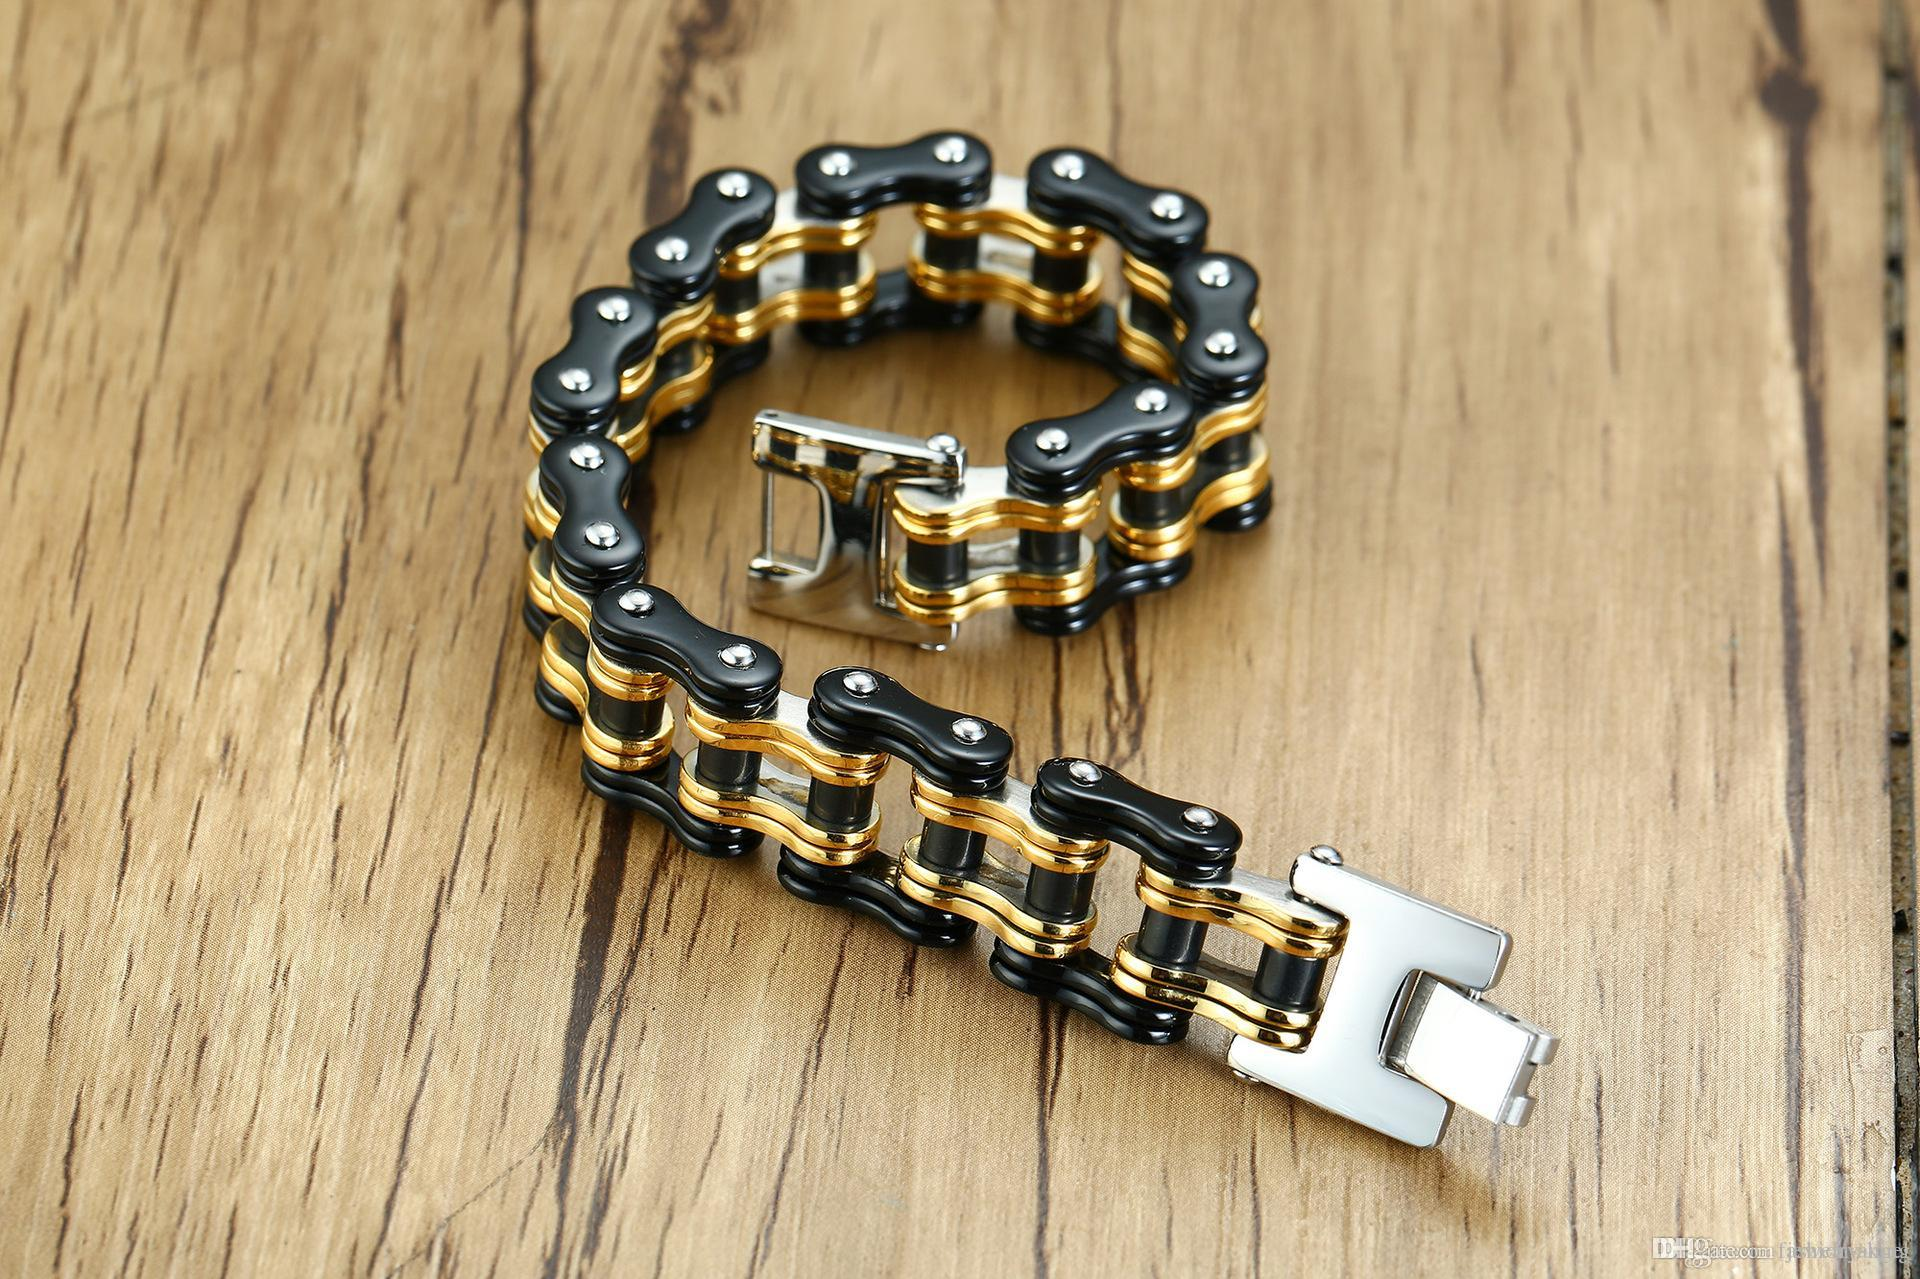 Top quality mixed order brand new men's stainless steel bicycle-style bracelets fashion accessaries motor chain bracelet body jewellery